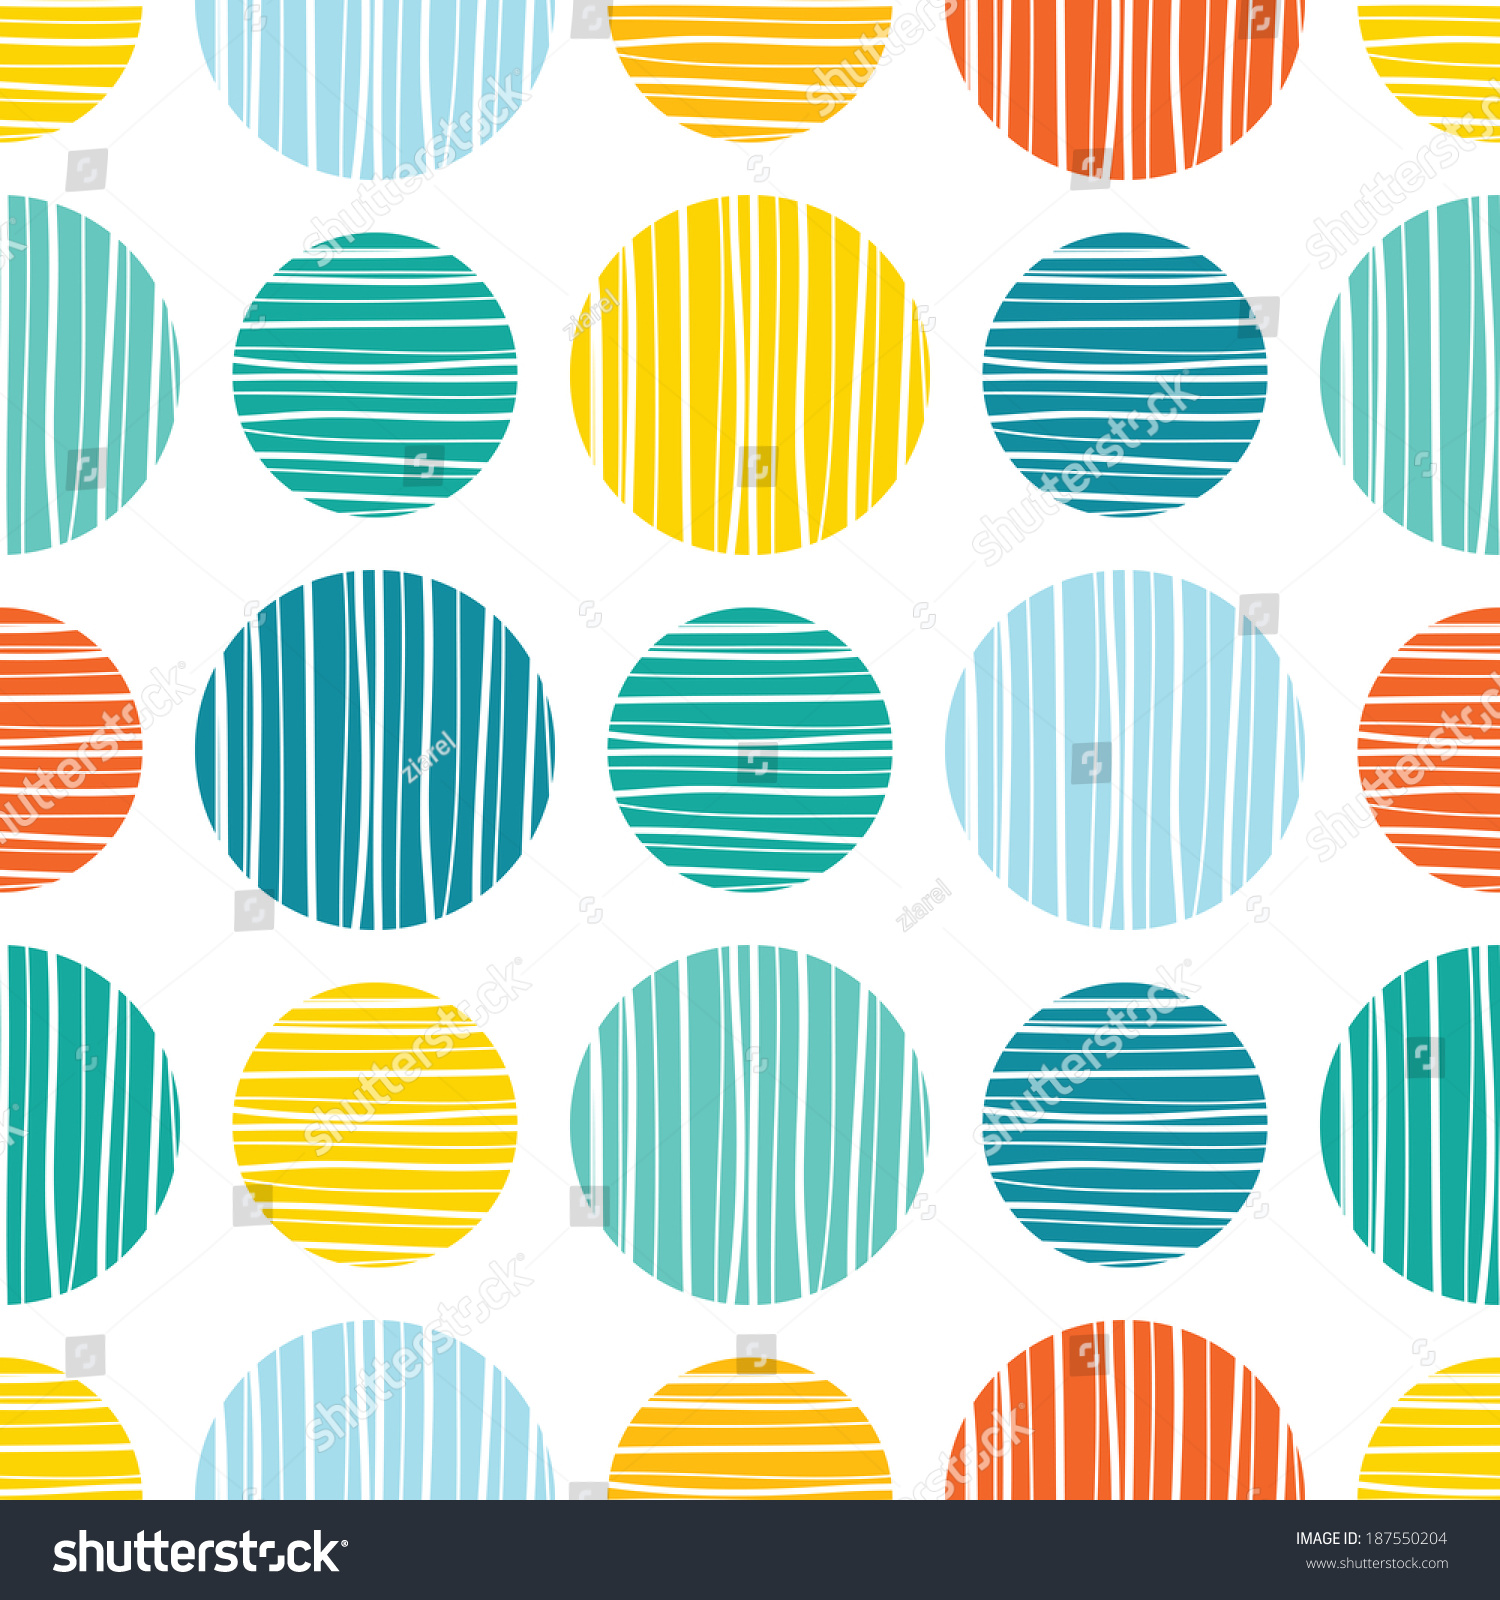 Scandinavian colorful lined rounds wallpaper background pattern design